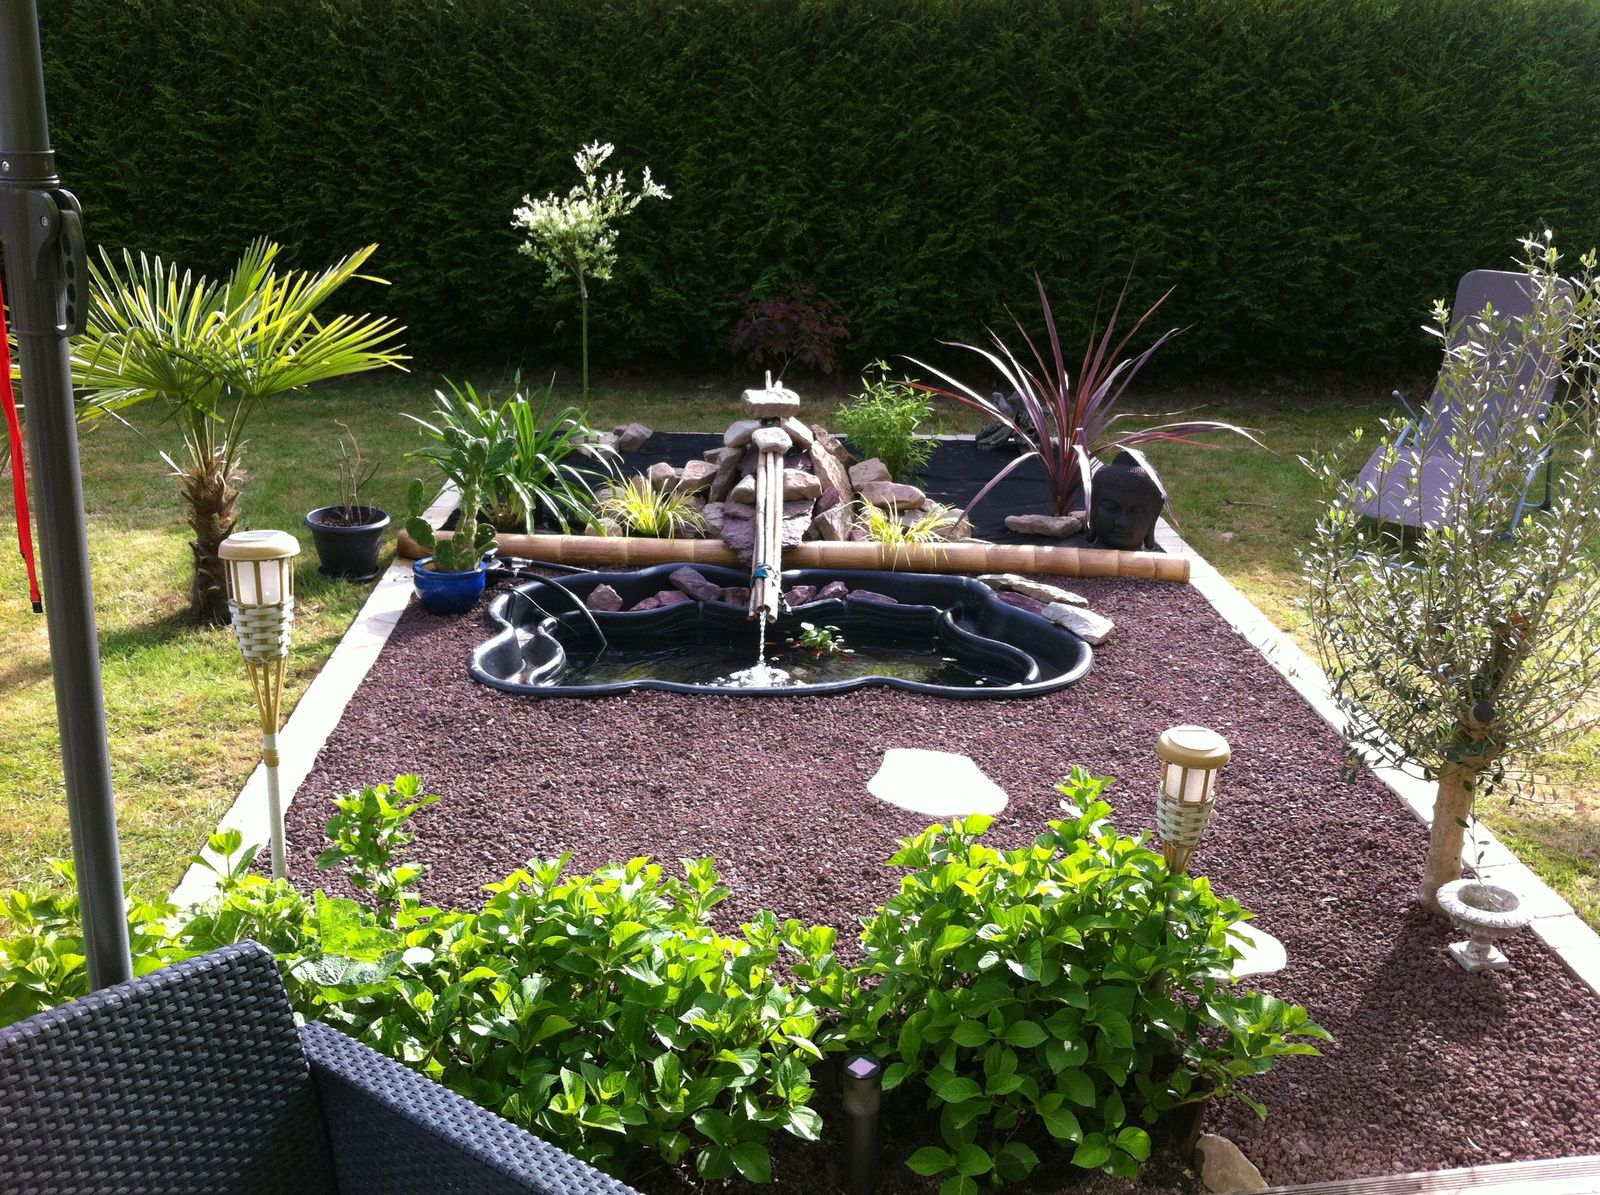 Un bassin de jardin zen voyages plong e vid o for Photo bassin de jardin